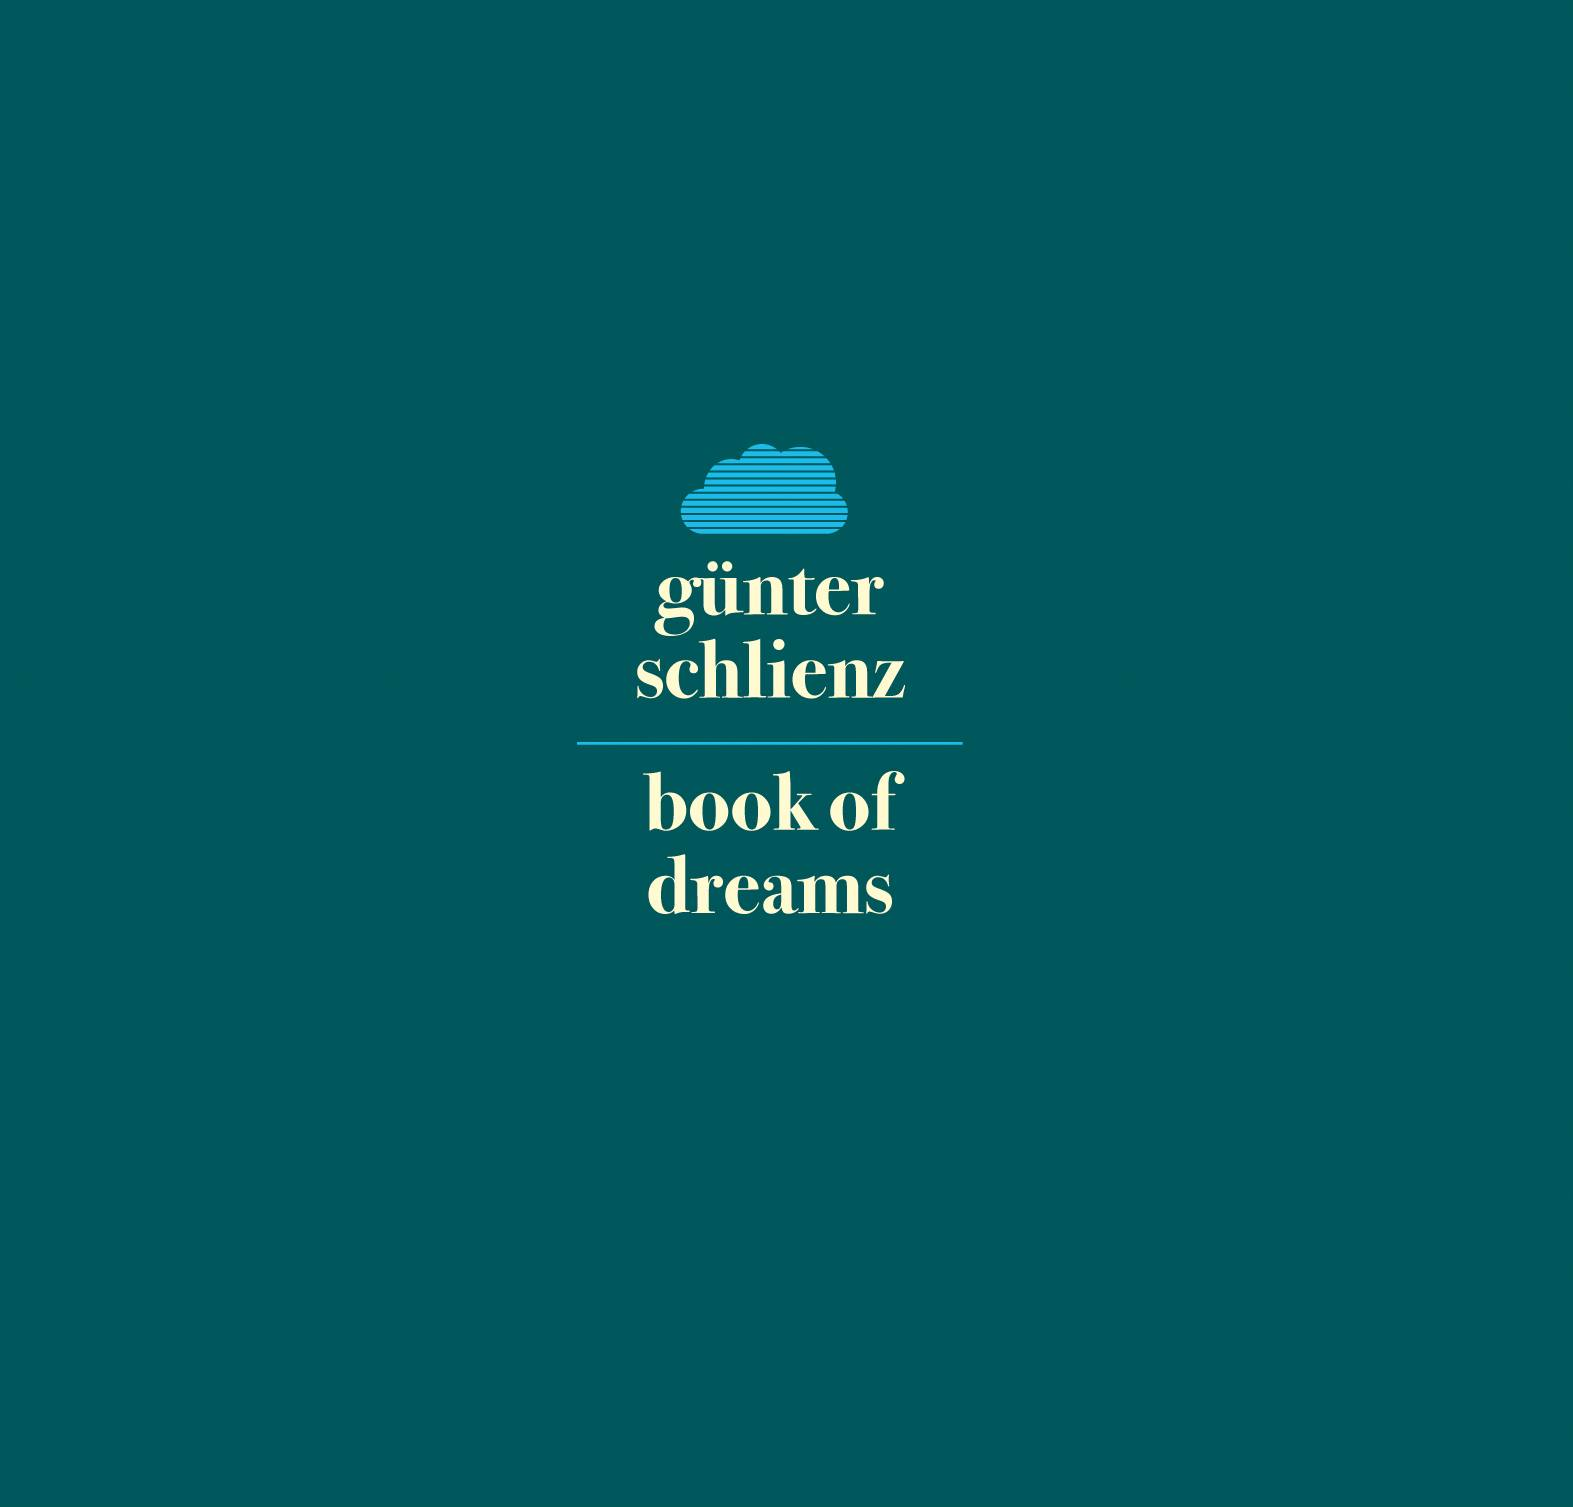 gunter_schlienz-book_of_dreams-front